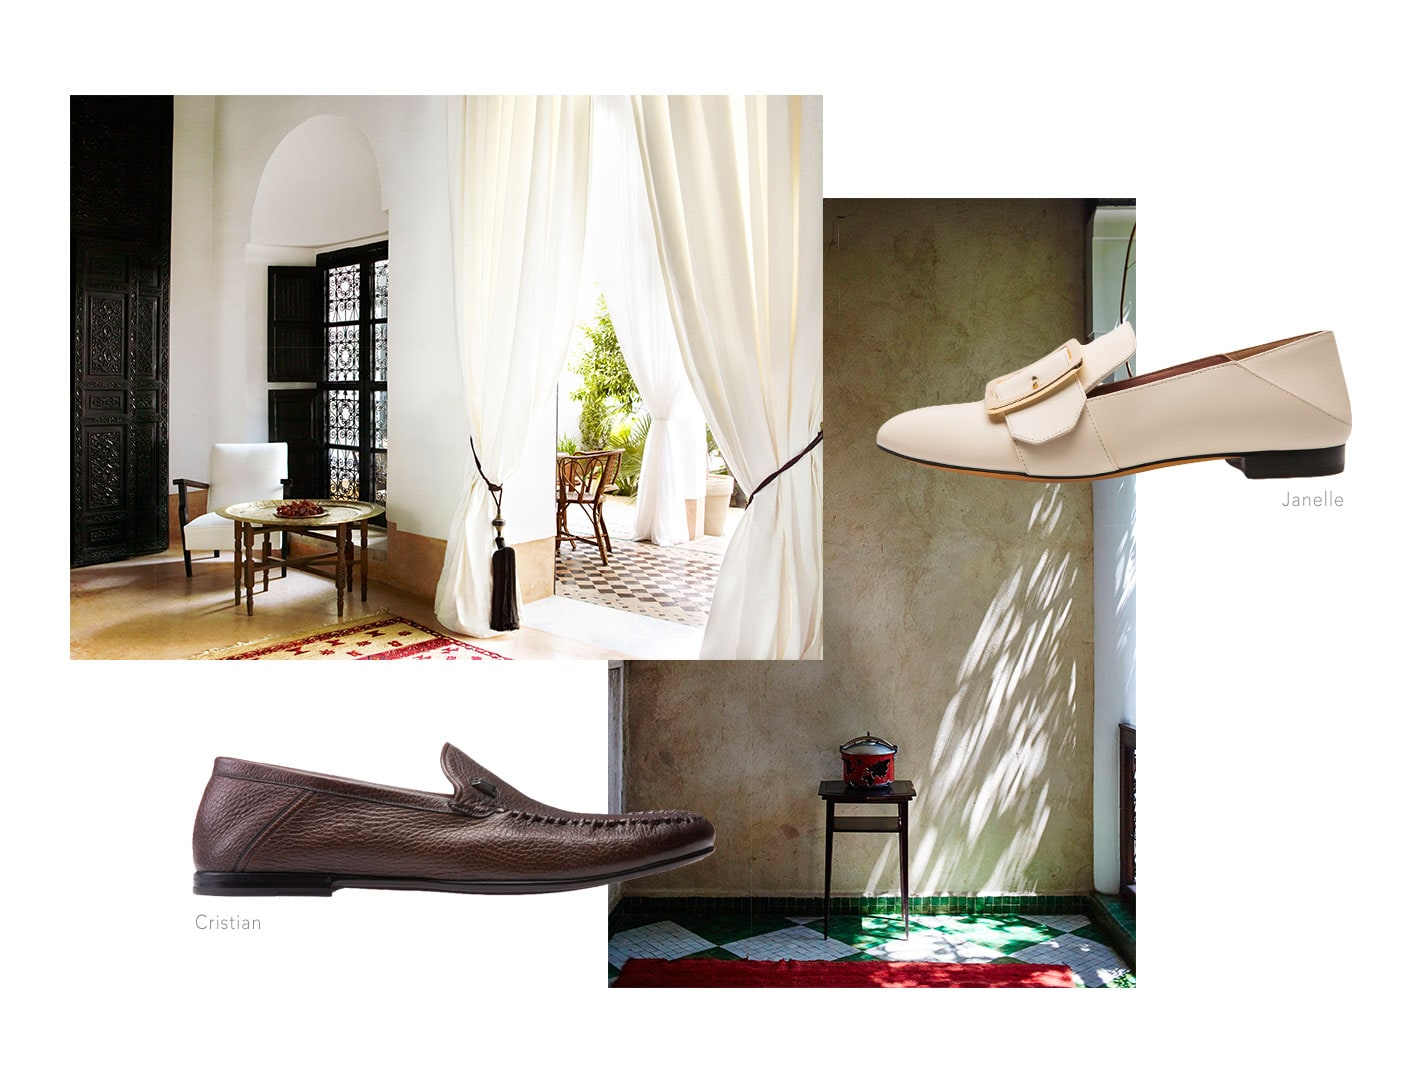 Wear the Janelle and Cristian babouche shoes to L'Hotel and around Marrakesh.